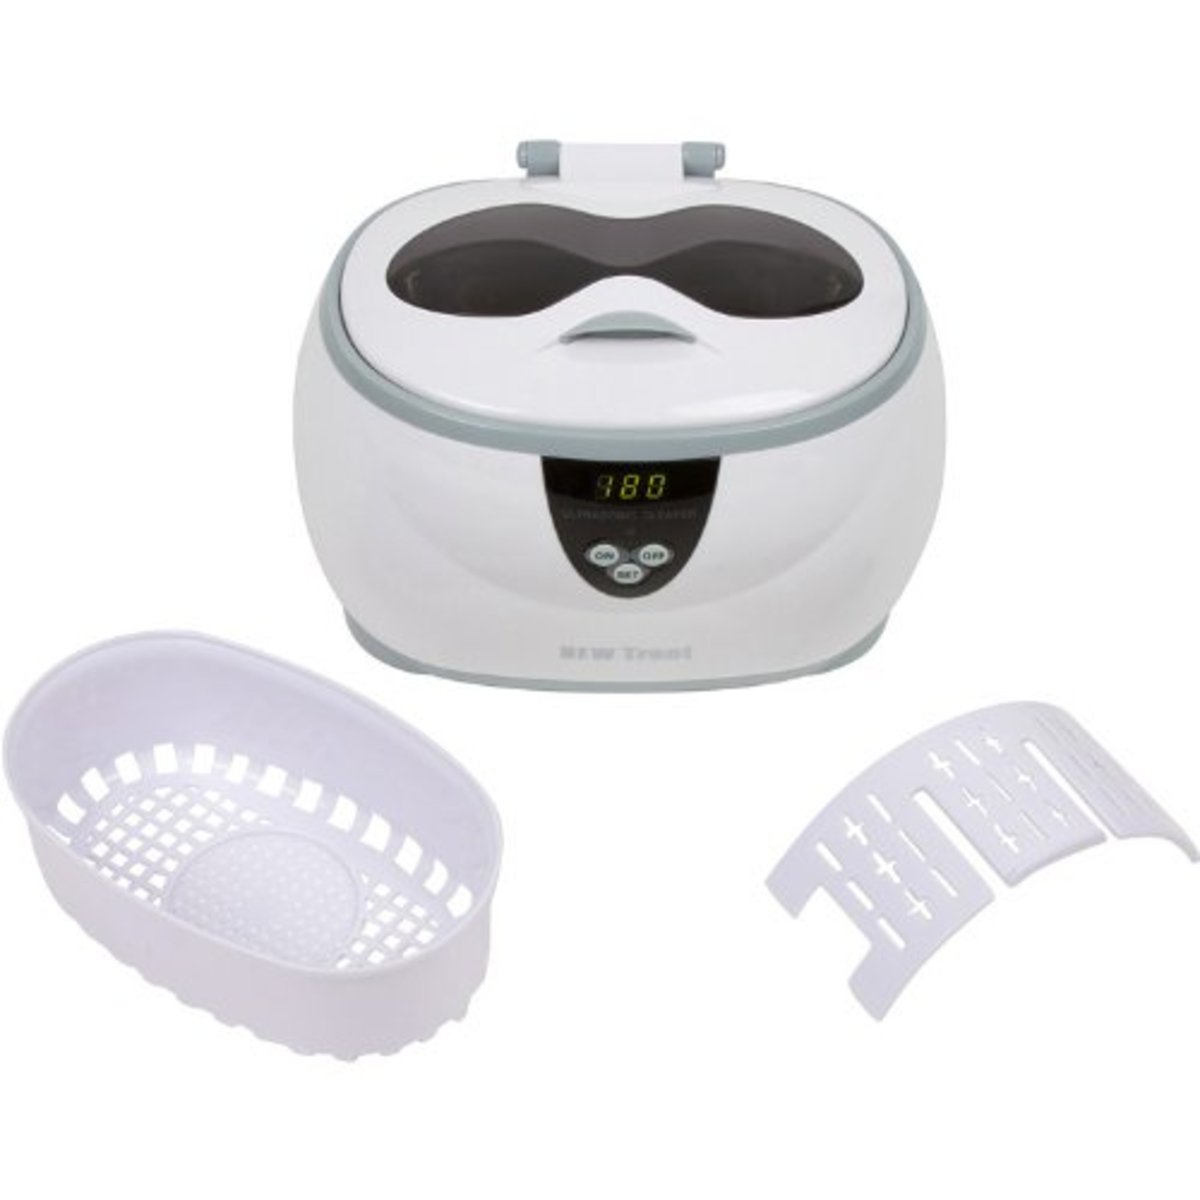 This is a larger image of the New Trent Ultrasonic Jewelry Cleaner pictured below